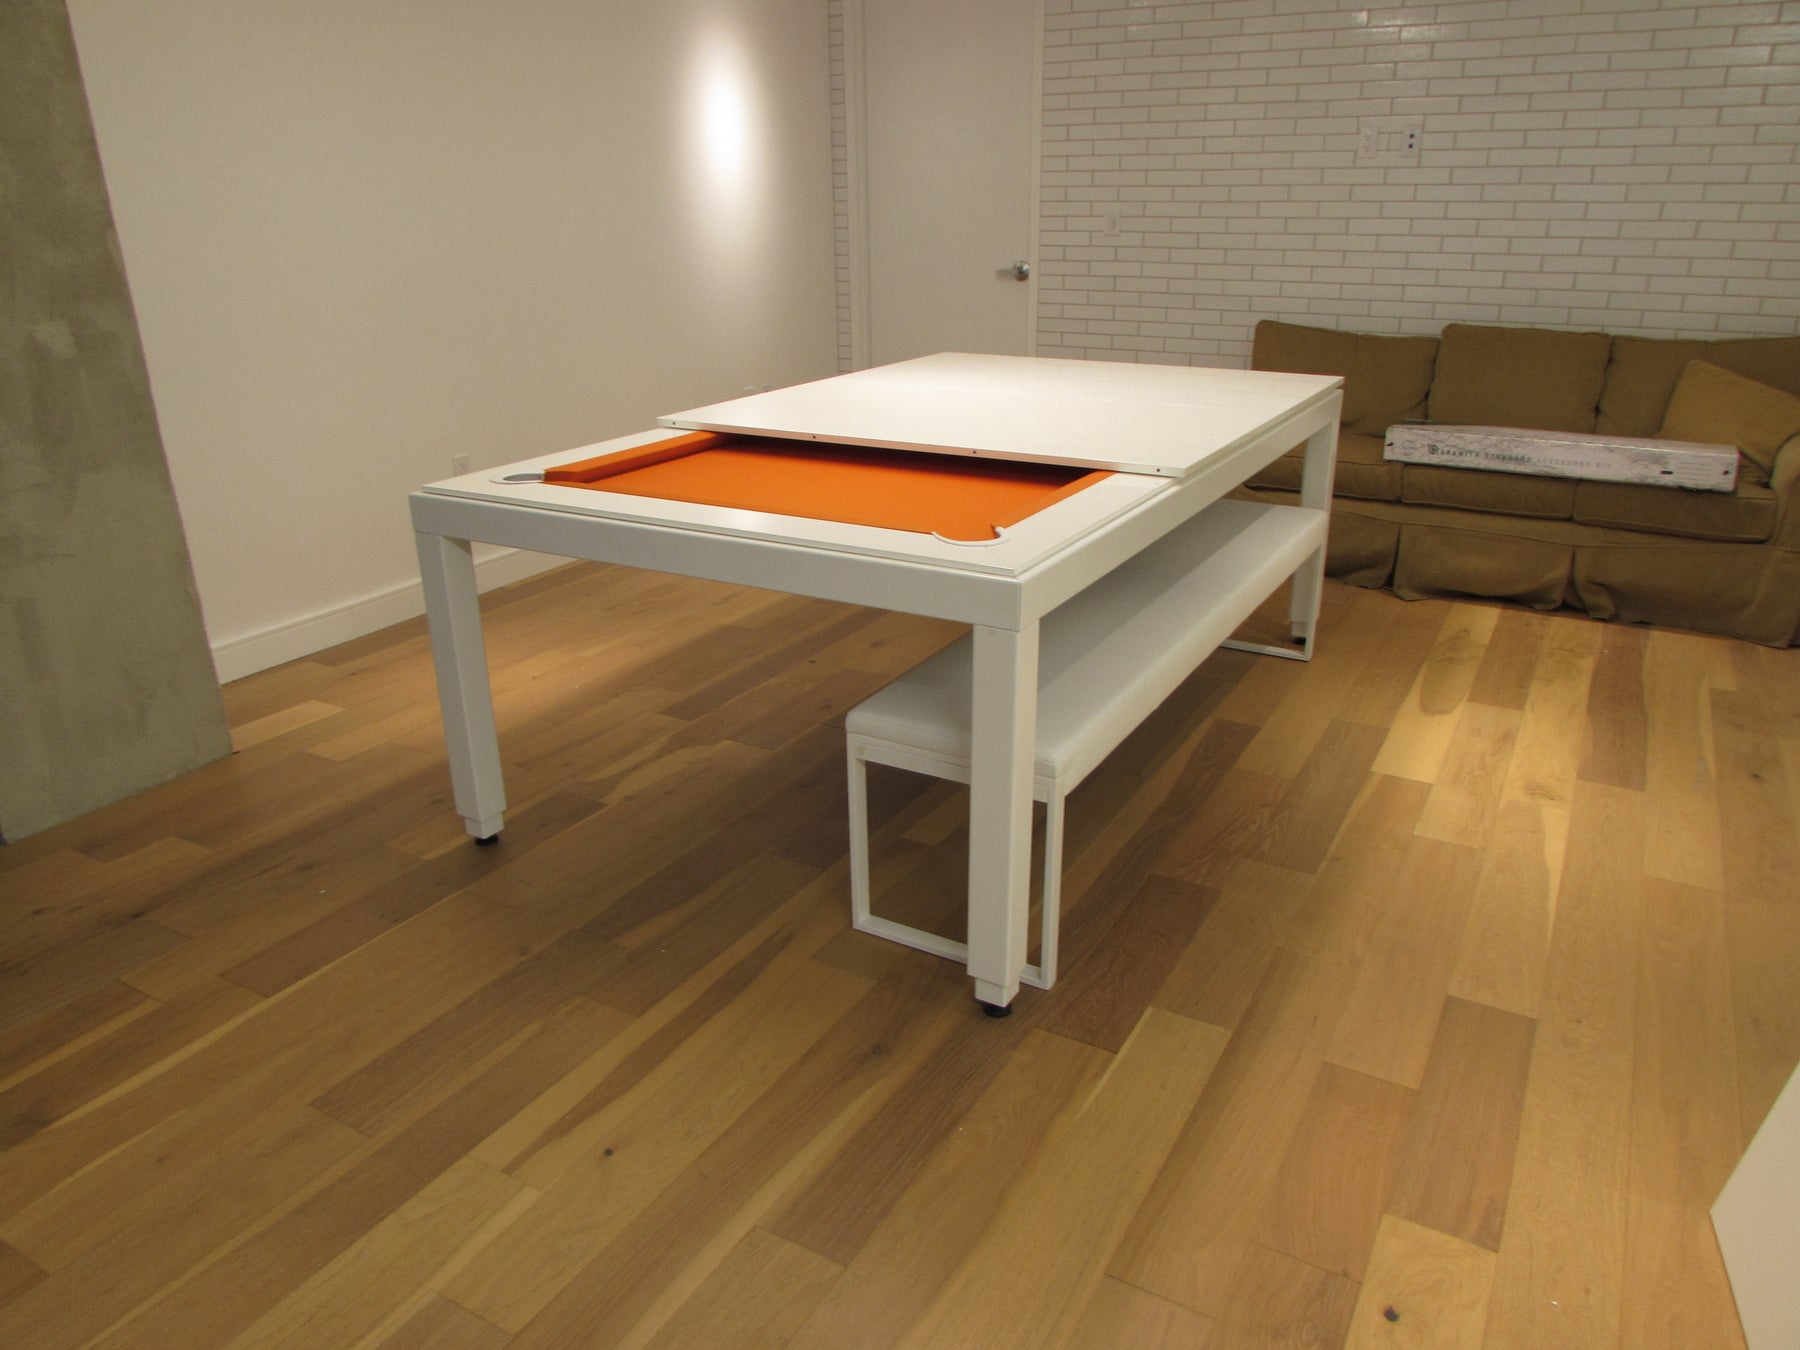 Aramith Fusion Dining Pool Table Installed in Washington DC